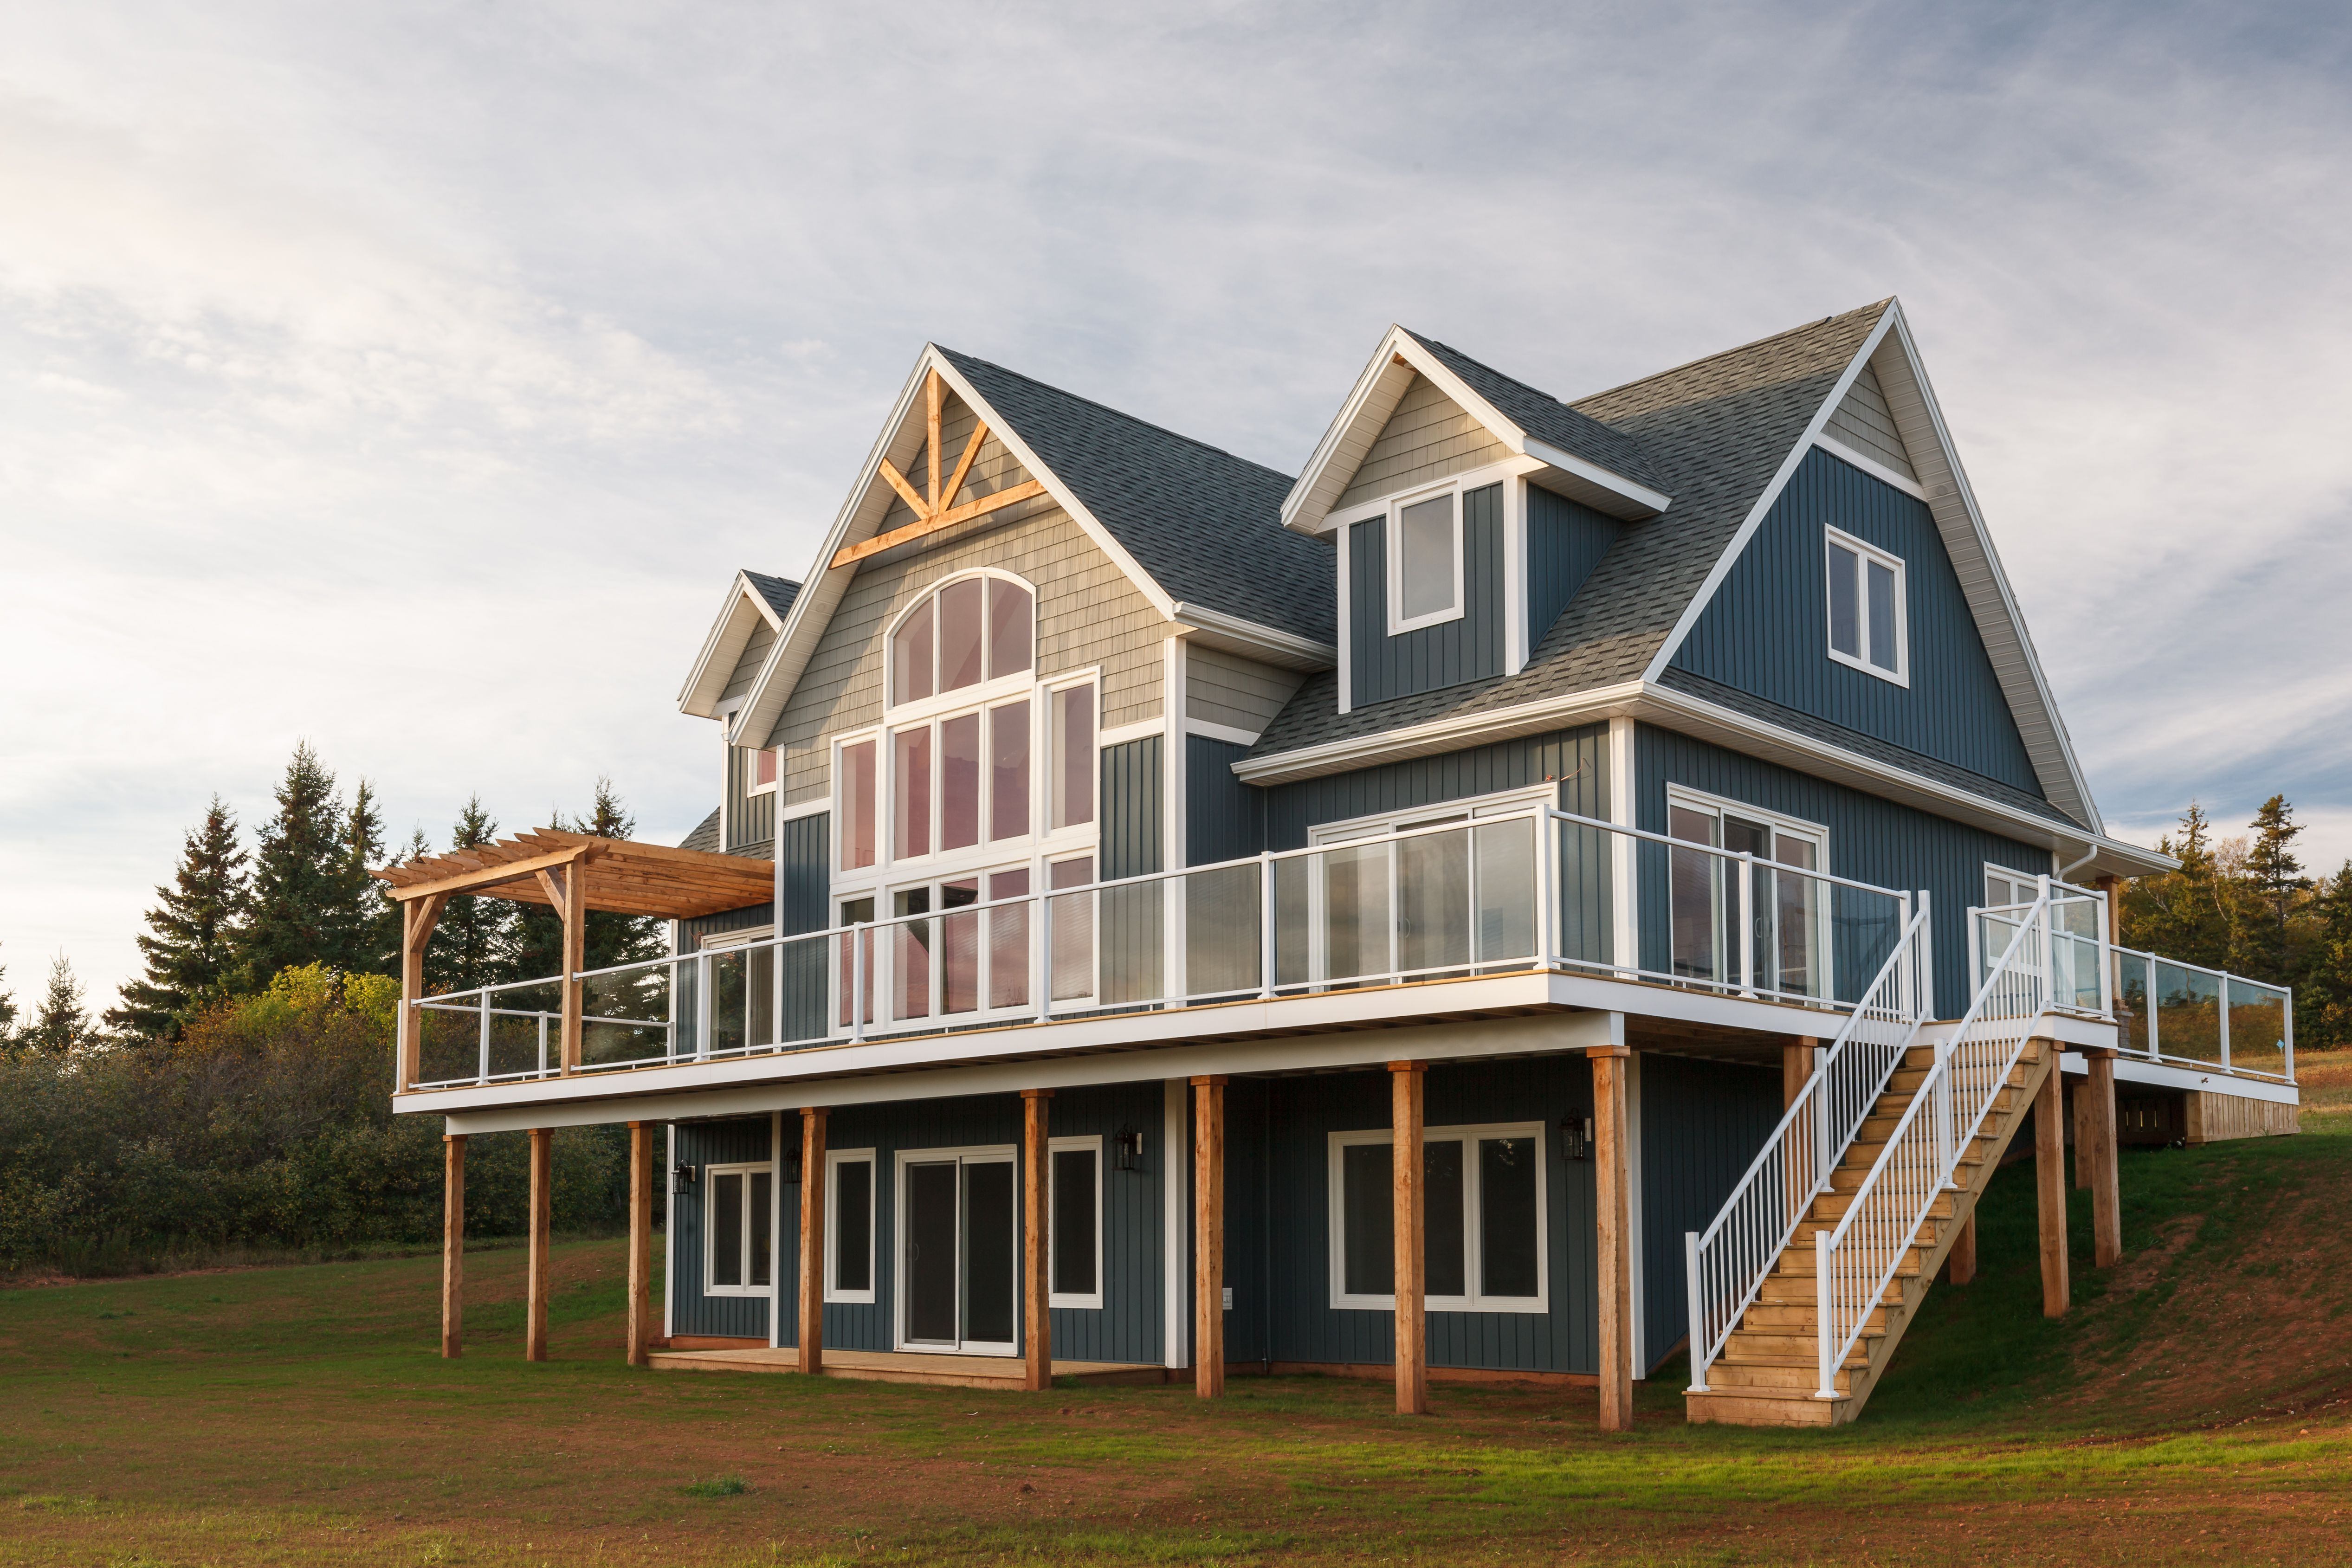 Gorgeous Home Featuring Royal Woodland Board Batten Siding In Heritage Blue Portsmouth Double House Exterior House Designs Exterior Exterior Color Palette